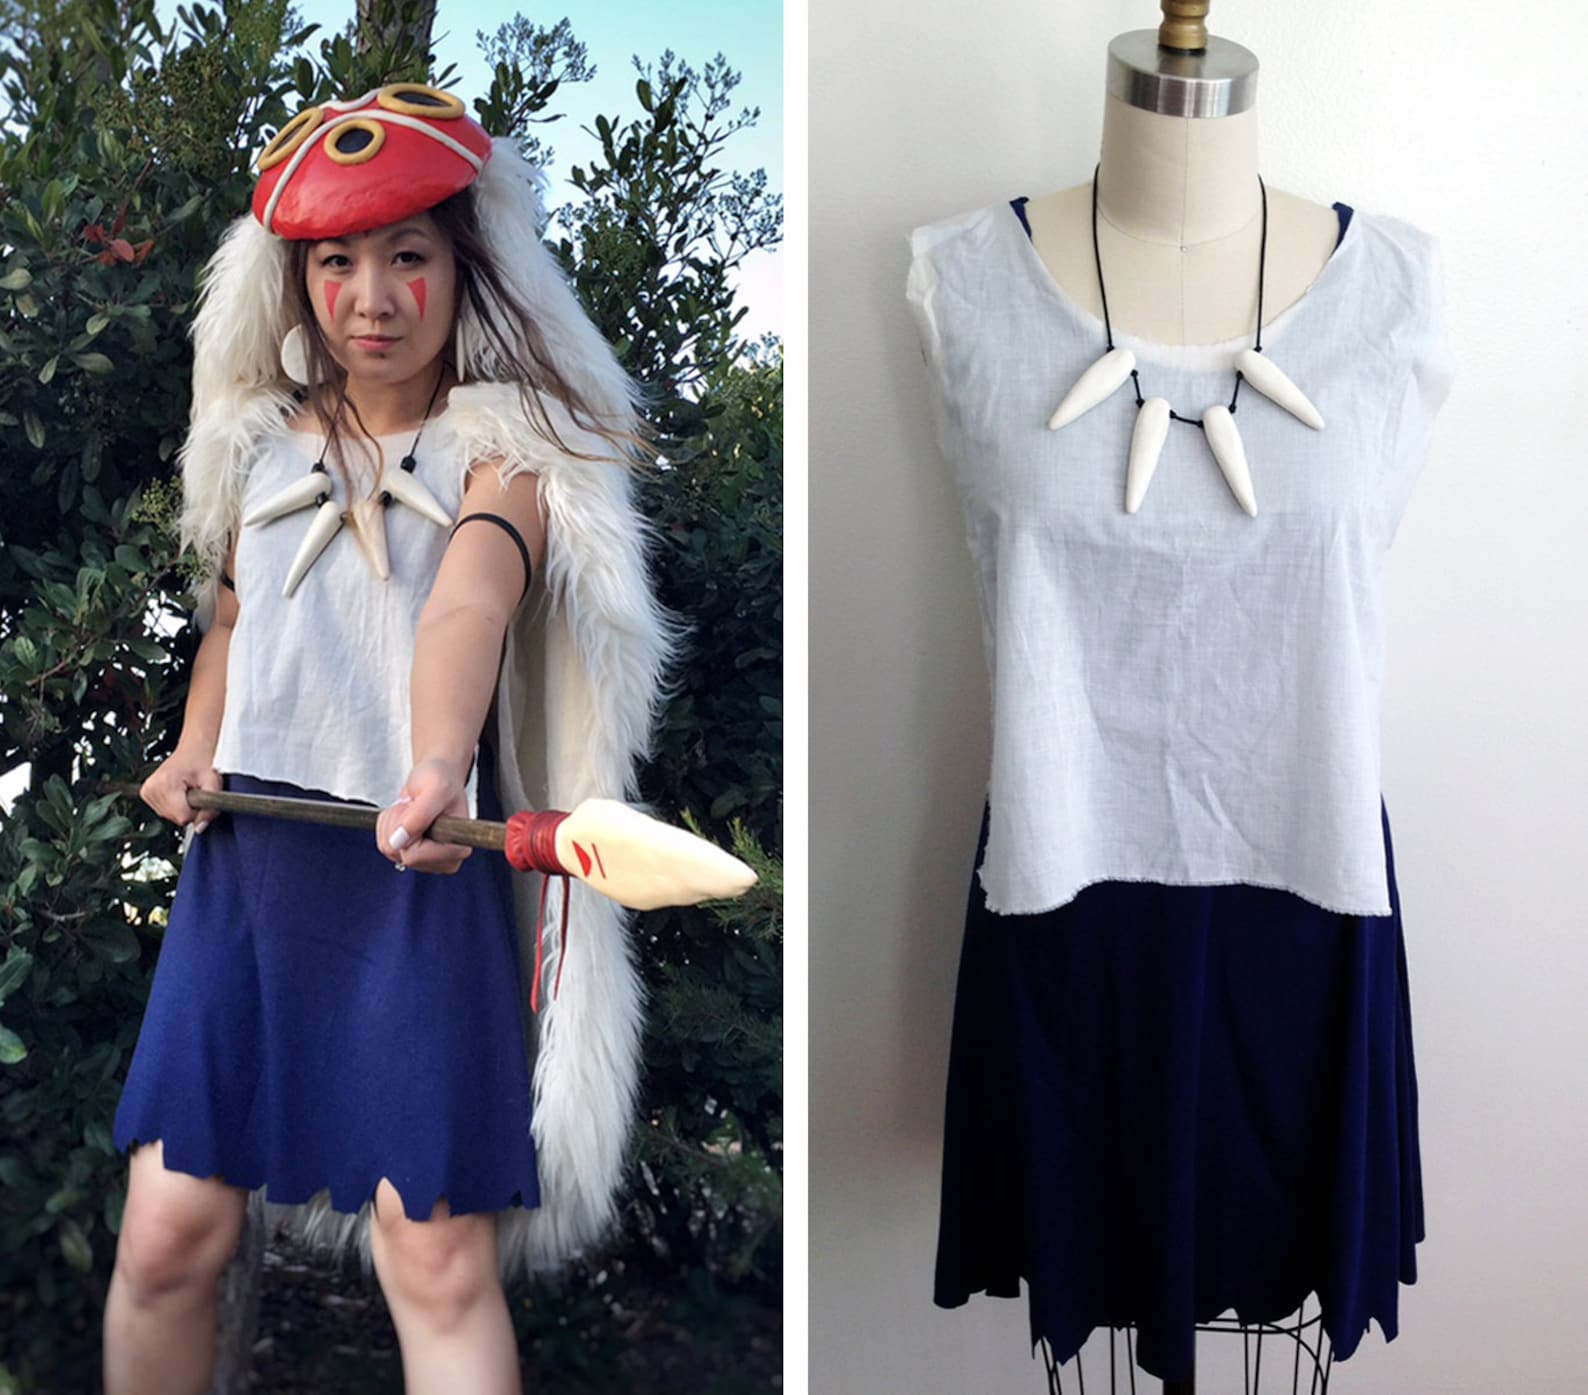 Princess Mononoke San Dress and Shirt set Cosplay Costume only Custom Made Handmade